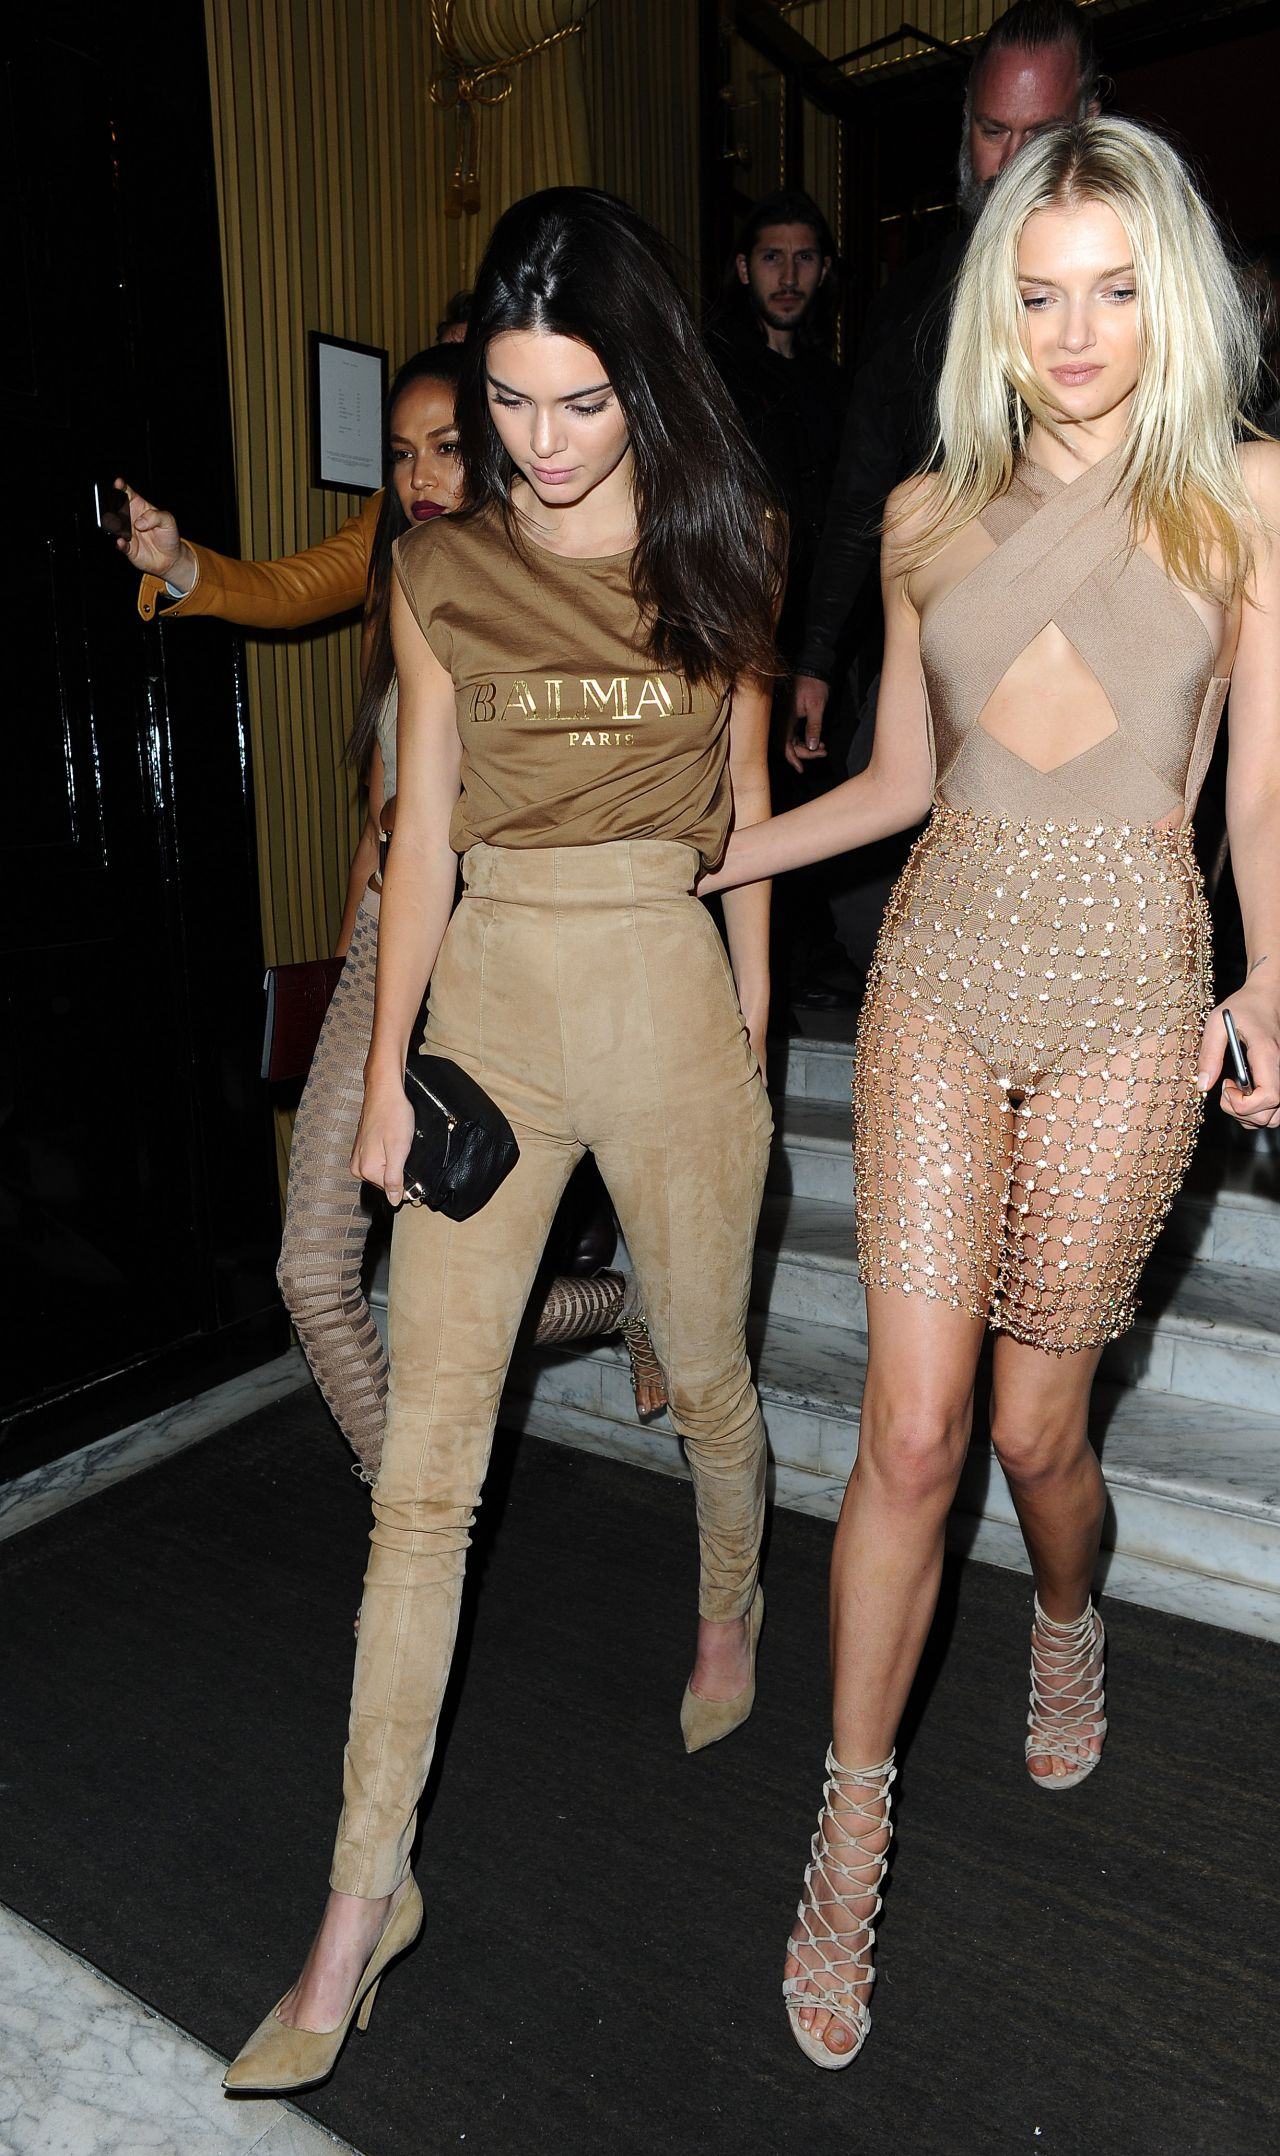 kendall-jenner-lily-donaldson-joan-smalls-leaving-costes-bar-in-paris-october-2015_10